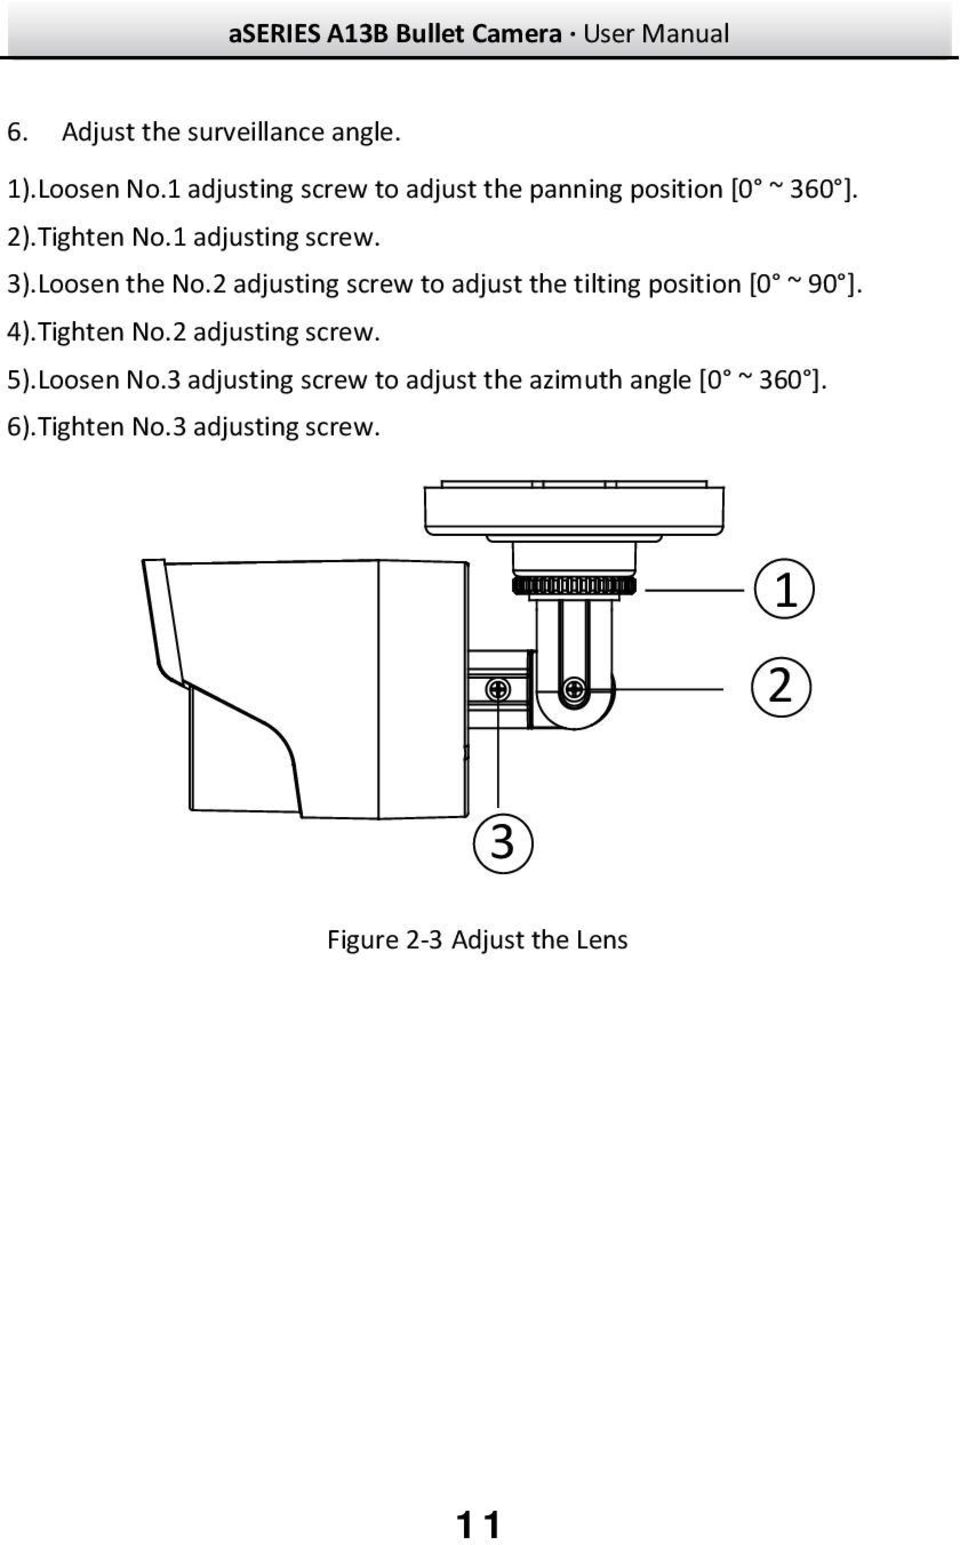 Loosen the No.2 adjusting screw to adjust the tilting position [0 ~ 90 ]. 4).Tighten No.